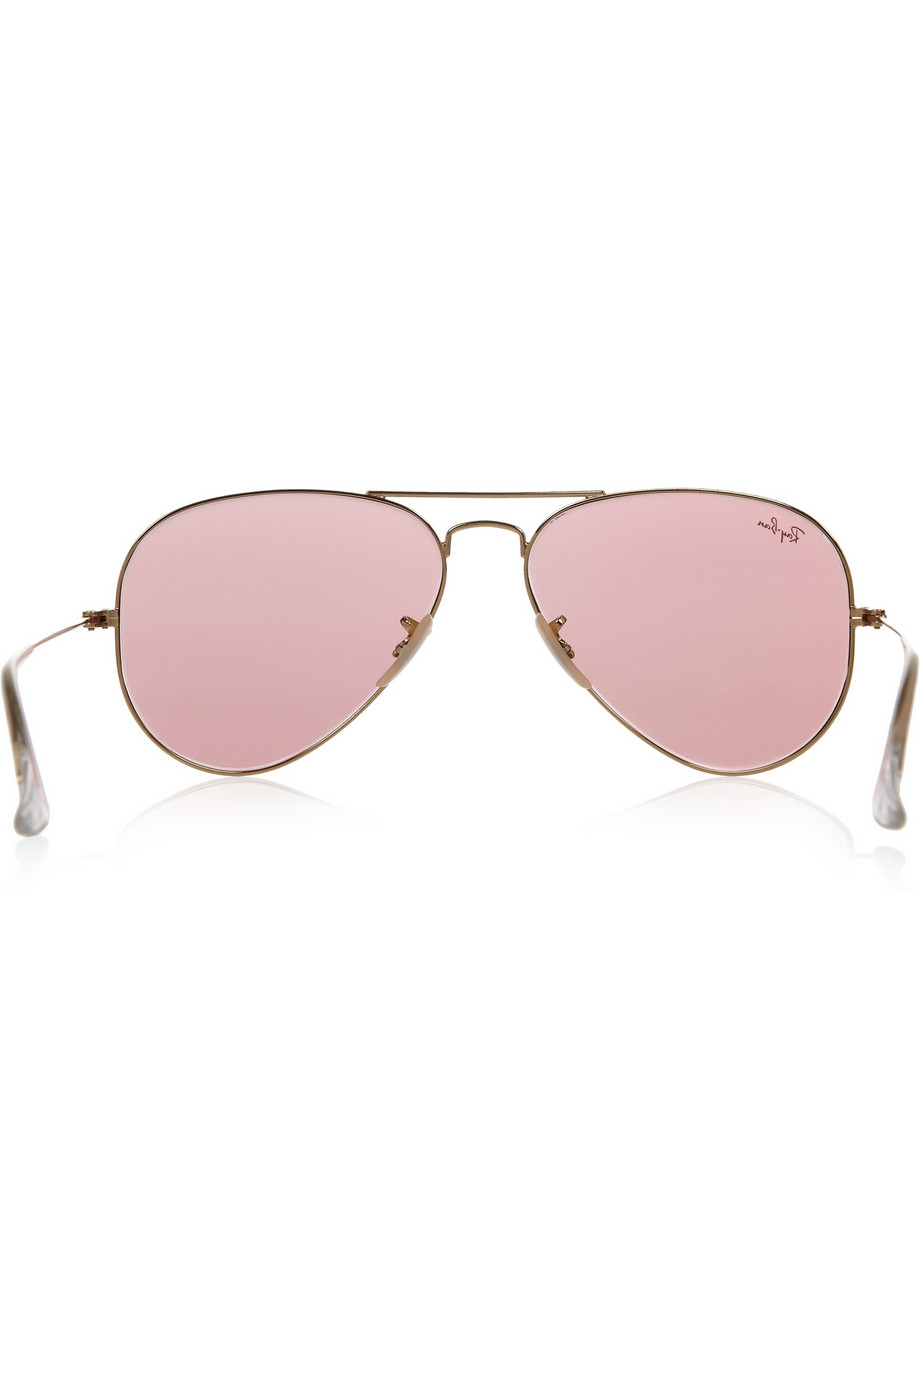 Lyst Ray Ban Aviator Mirrored Metal Sunglasses In Pink